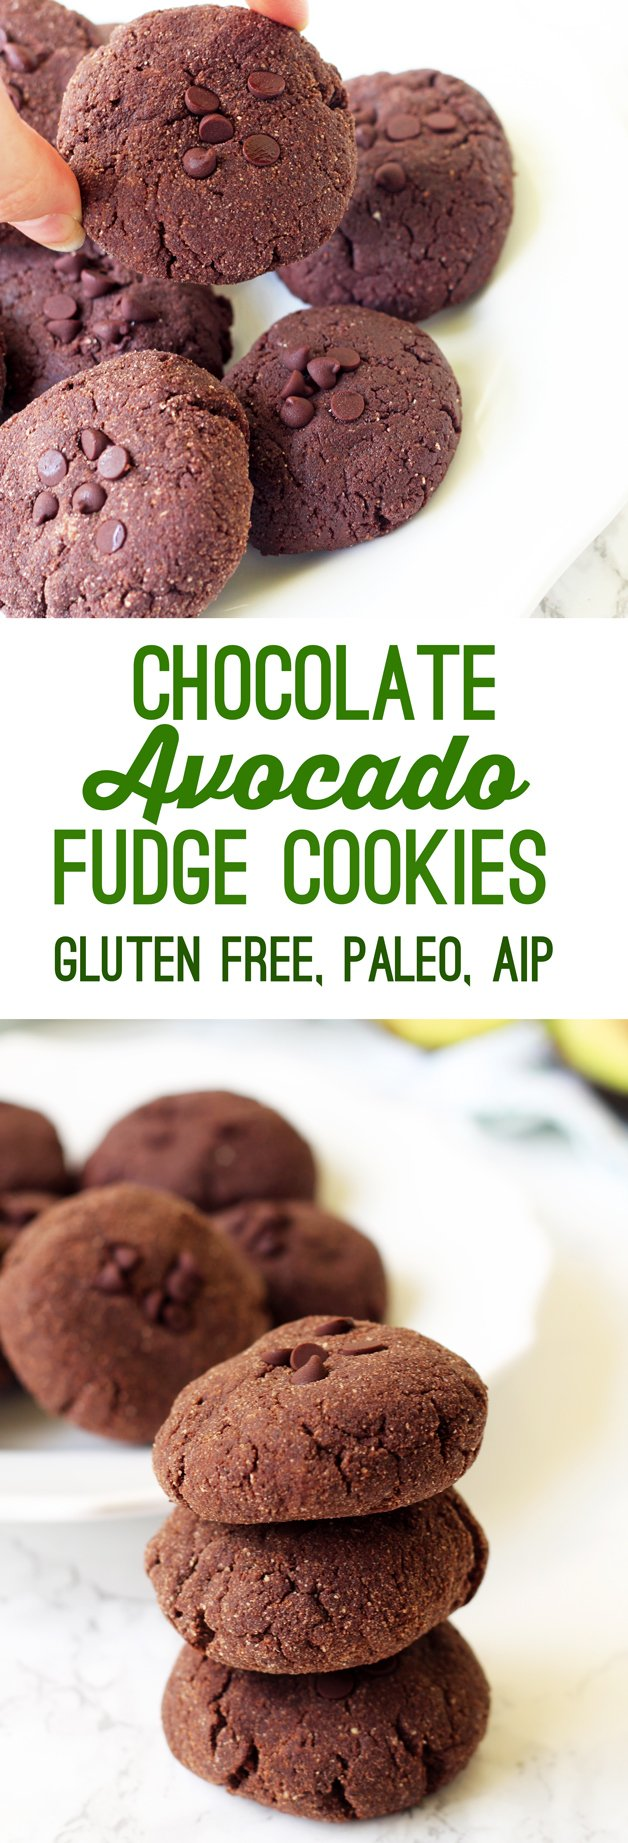 Avocado Chocolate Fudge Cookies (paleo, AIP)